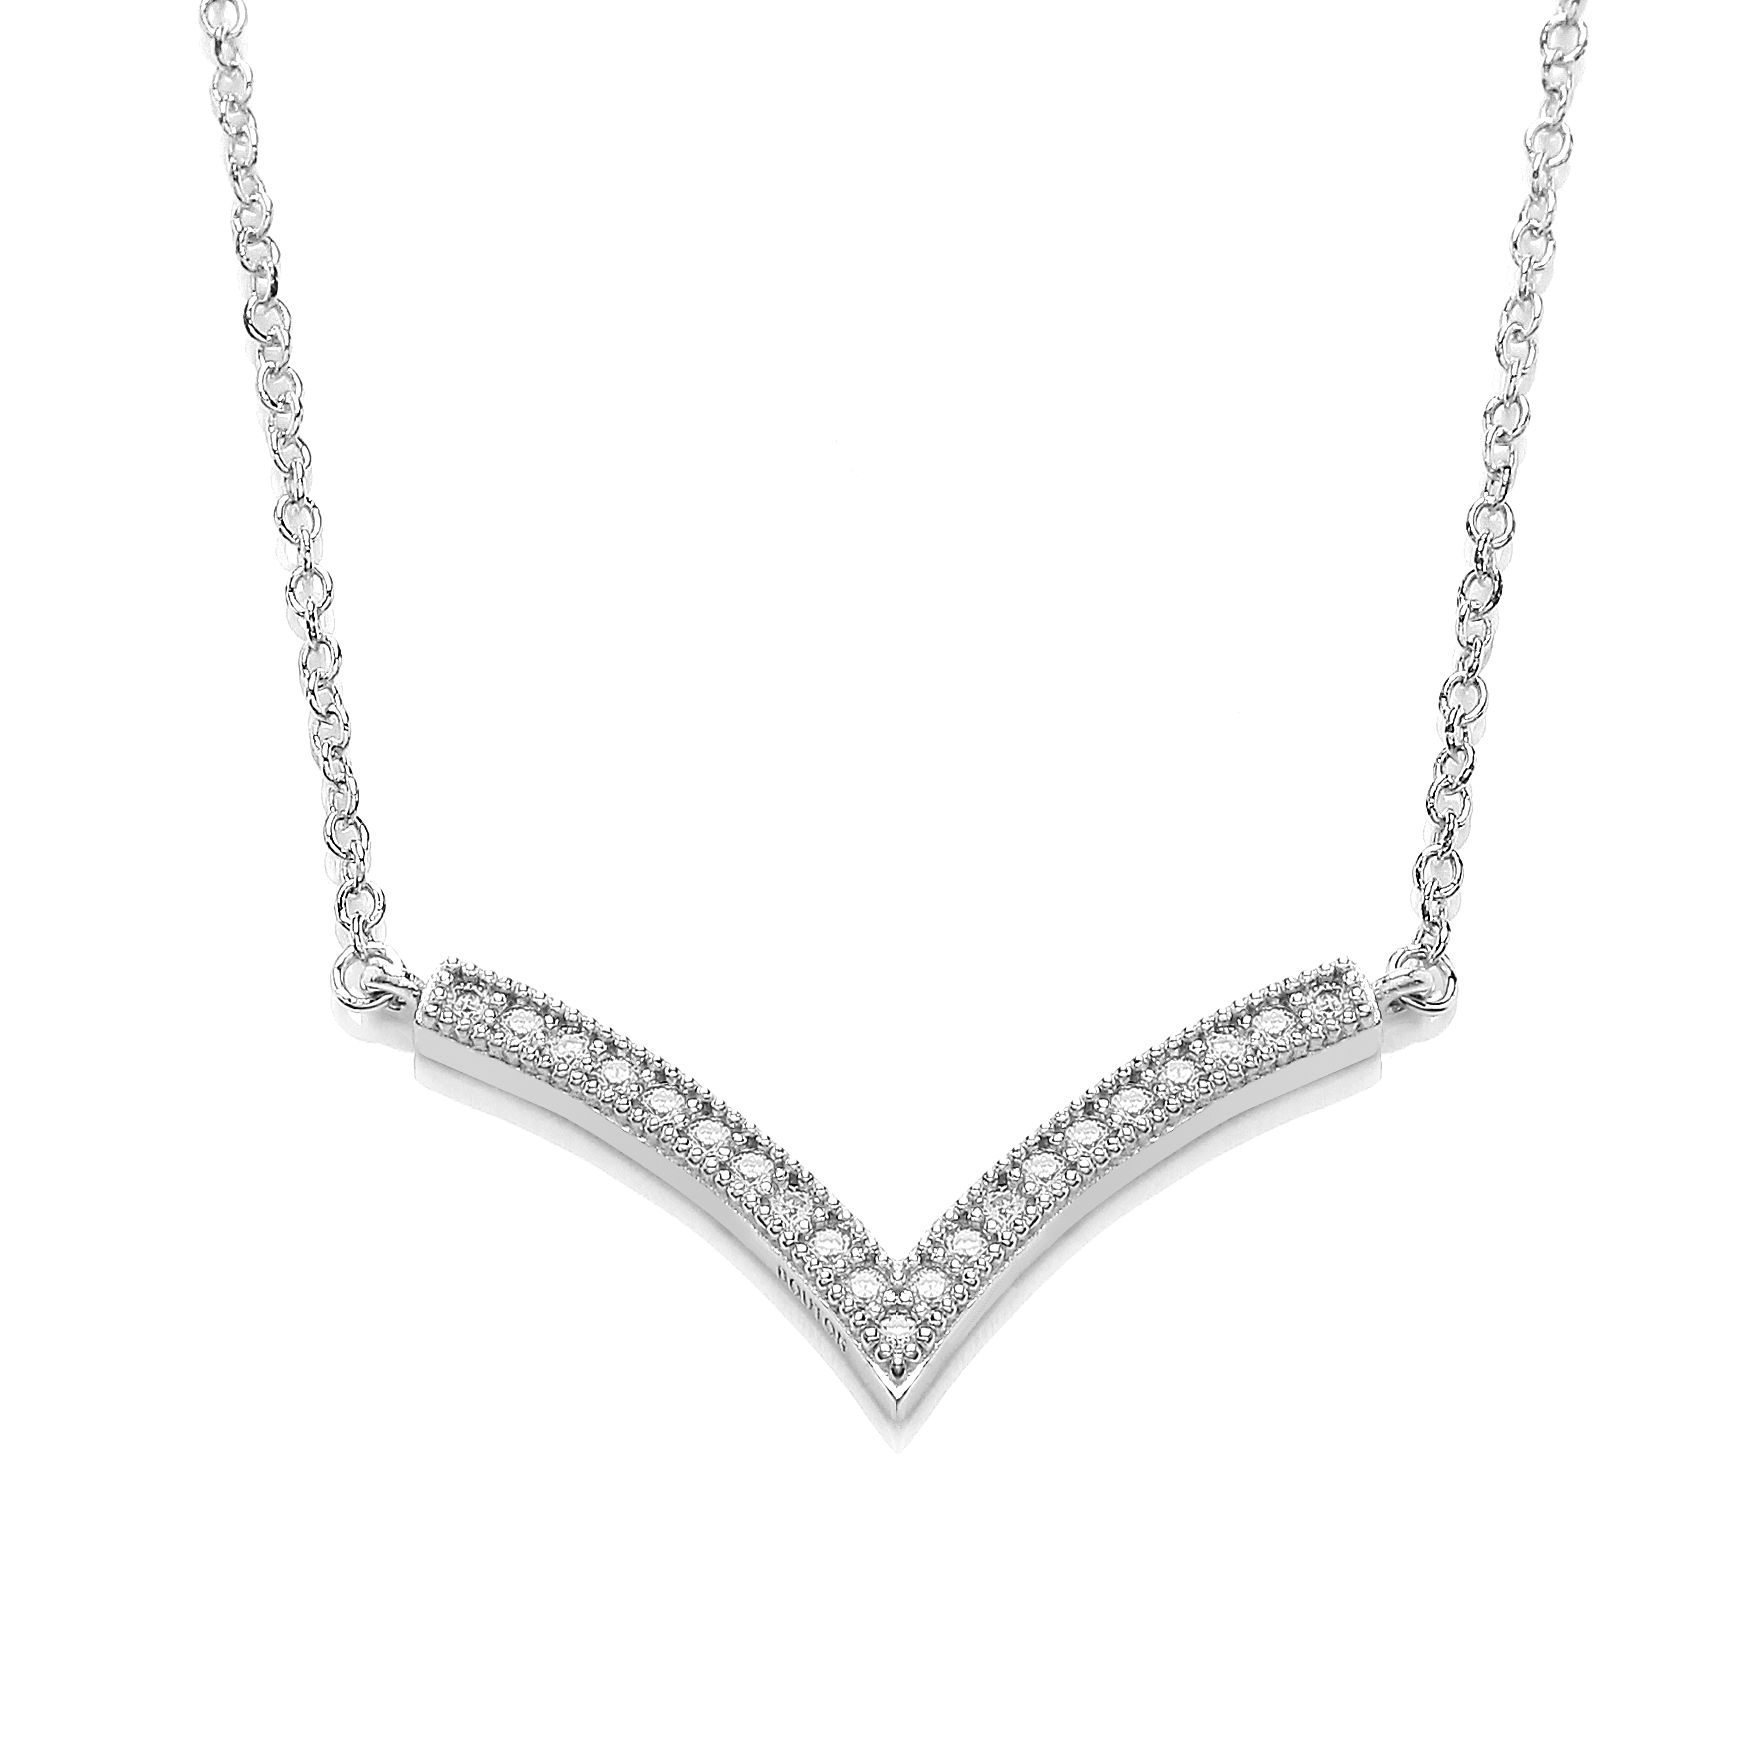 Rhodium wishbone necklace